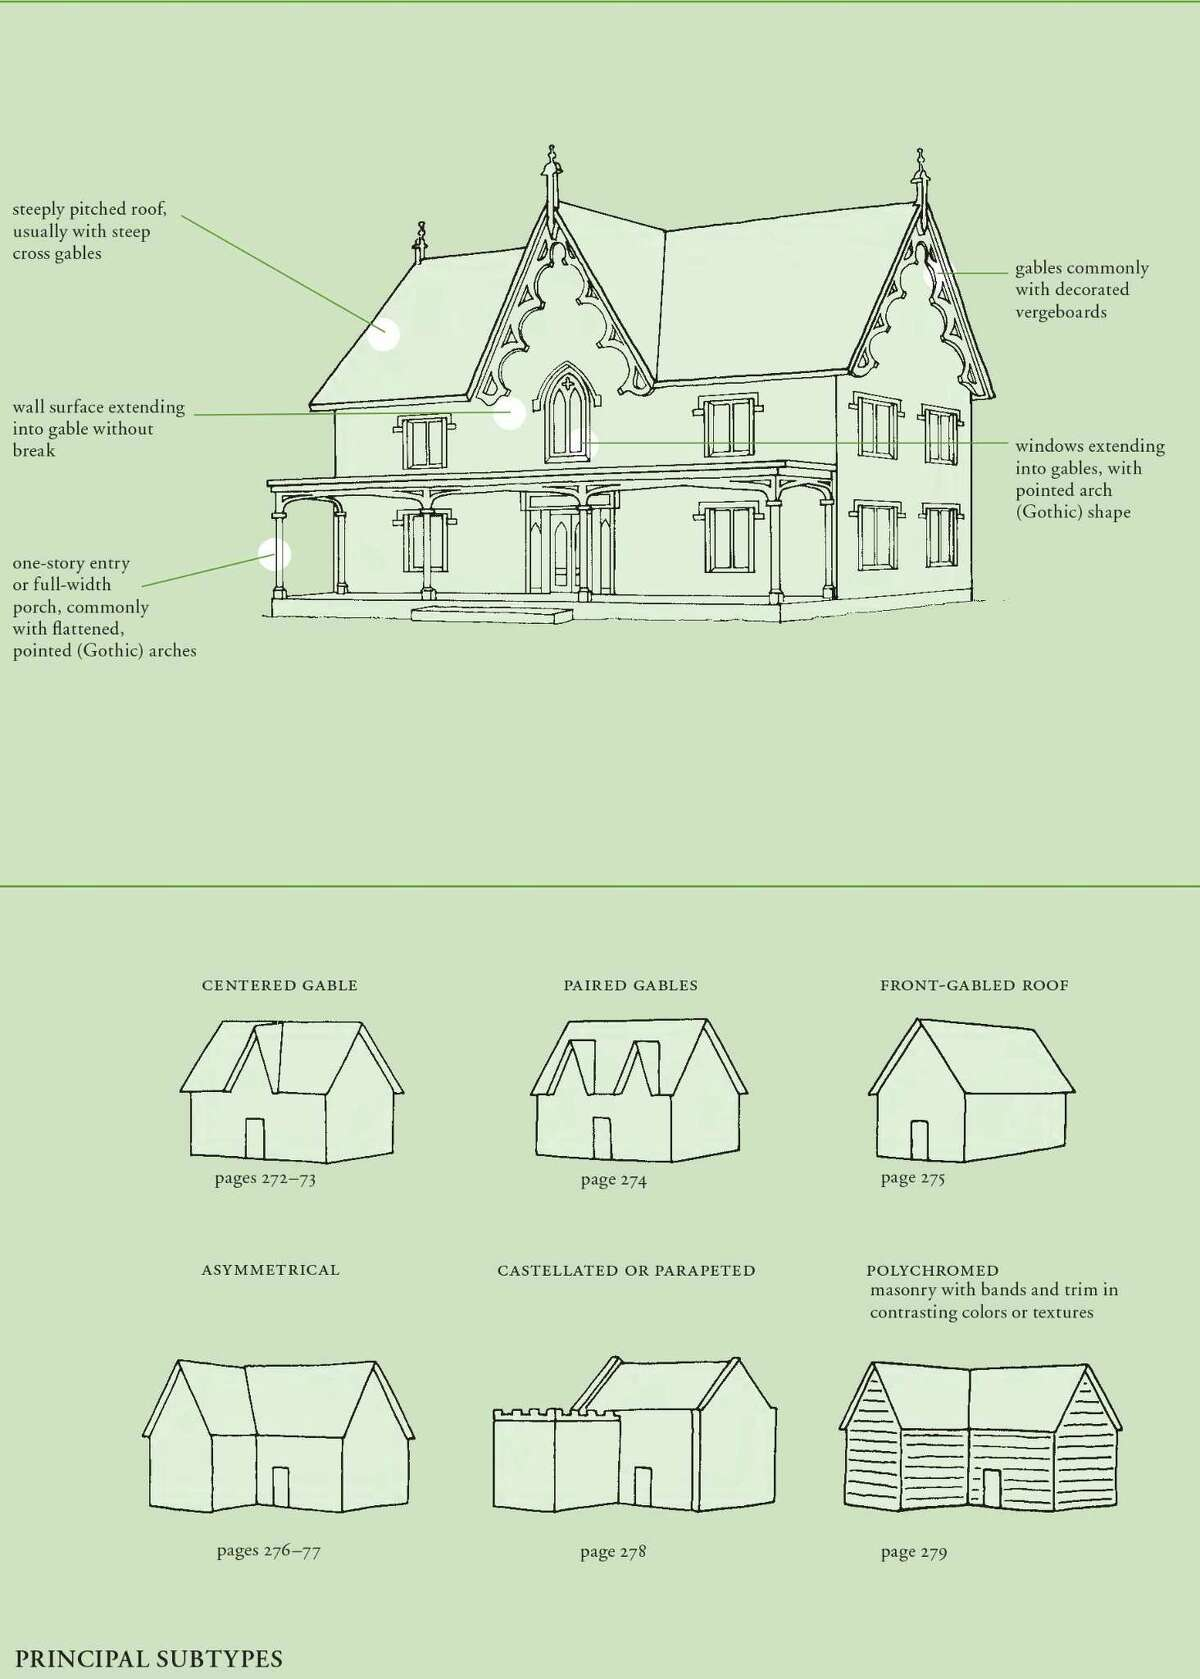 """This page from Virginia Savage McAlester's """"A Field Guide to American Houses"""" shows details of a Gothic Revival-style home with a steeply pitched roof and cross gables, decorated vergeboards and windows extending into gables."""